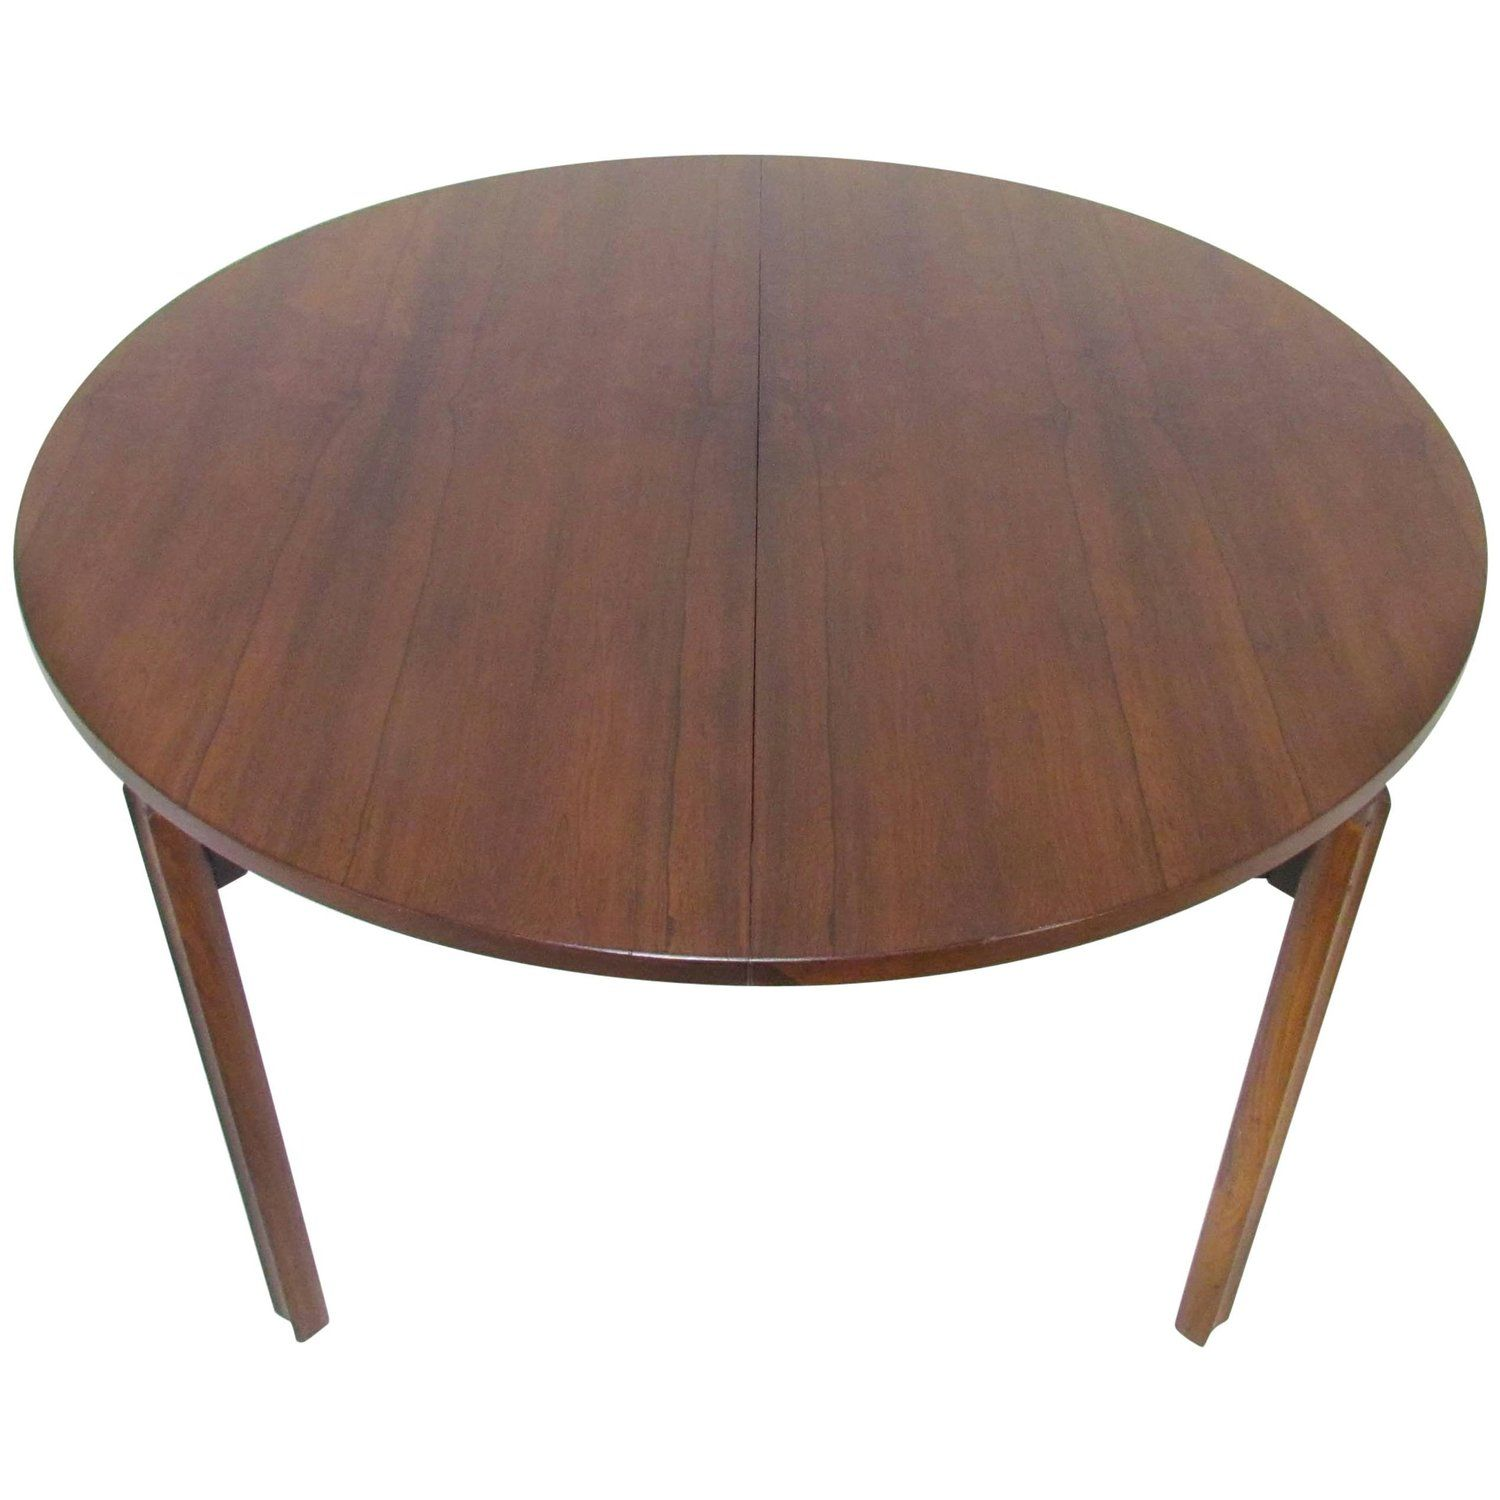 Stildomus Round Rosewood Dining Table With Butterfly Leaf Italy